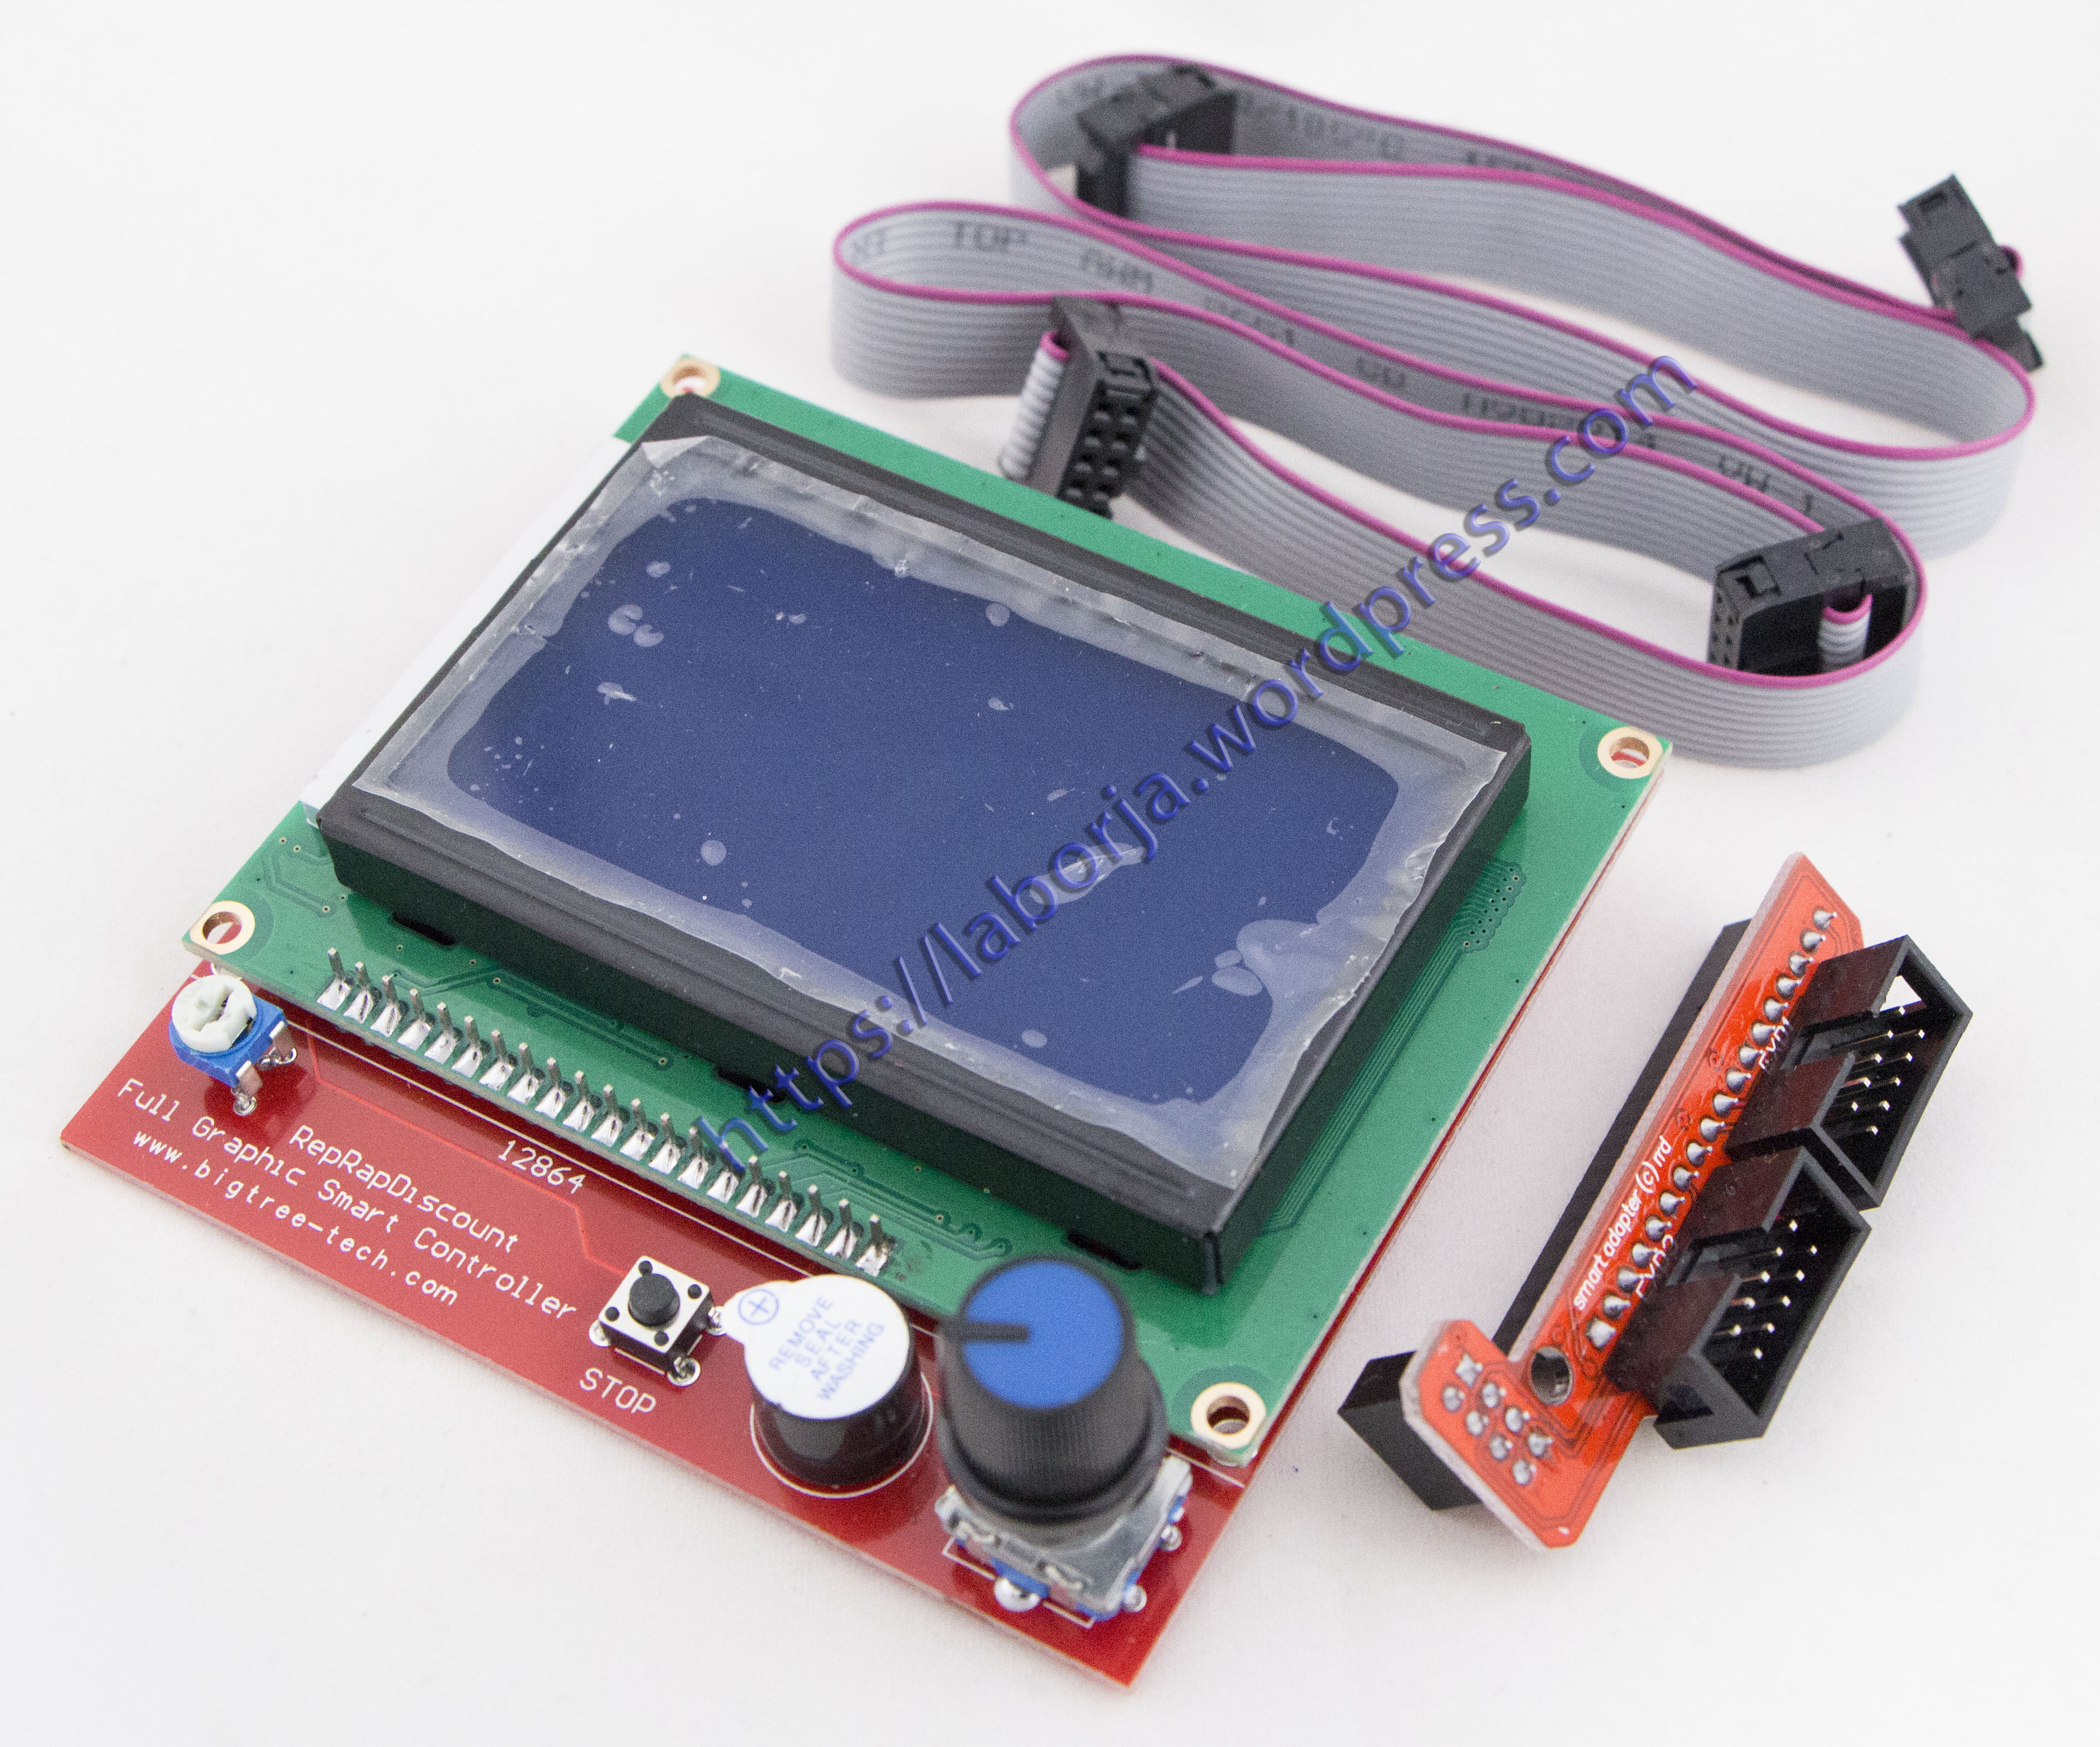 Ramps 14 Lcd 12864 Blue Screen Borja Home Page Copper Clad Boards 10x15cm 100x150x12mm High Quality For Circuit Pcb